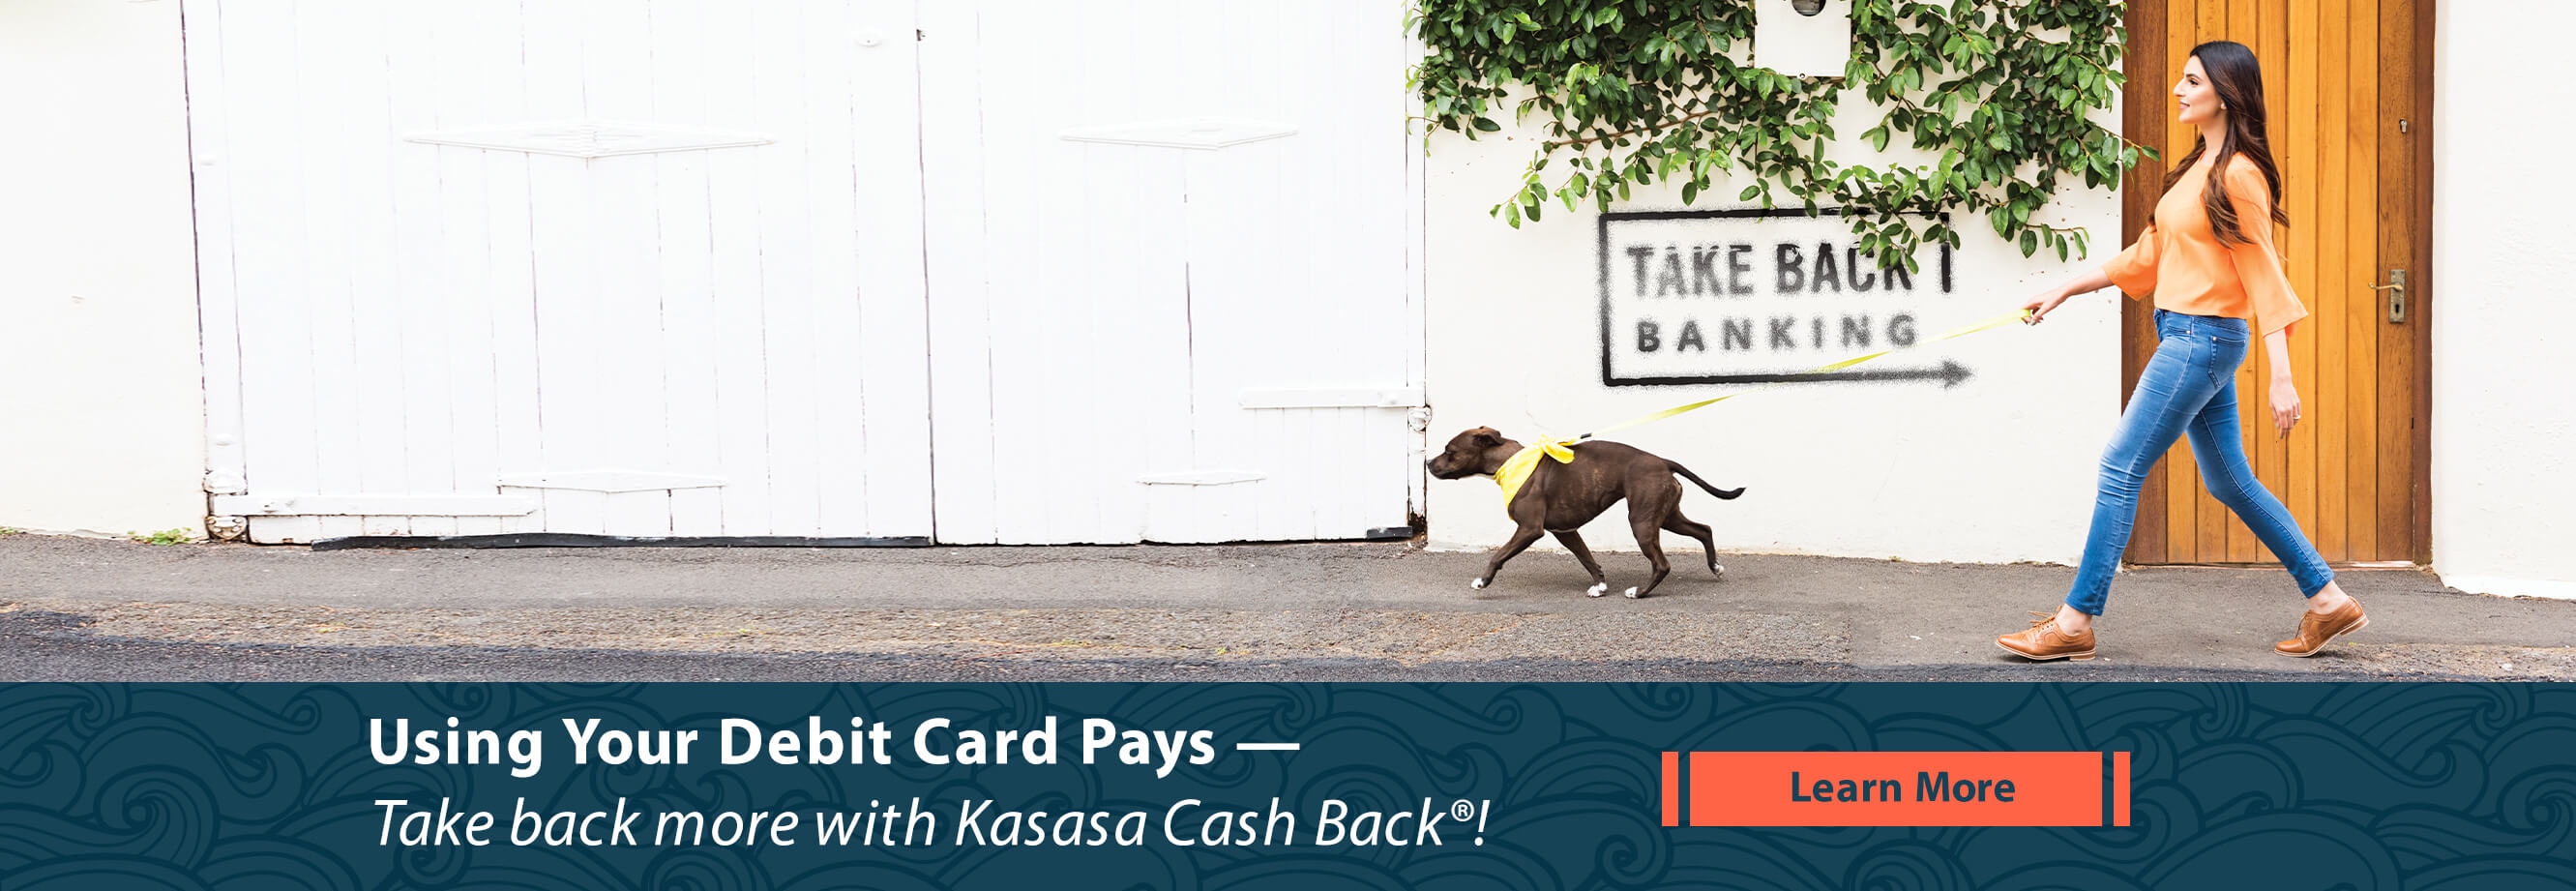 Using Your Debit Card Pays with Kasasa Cash Back